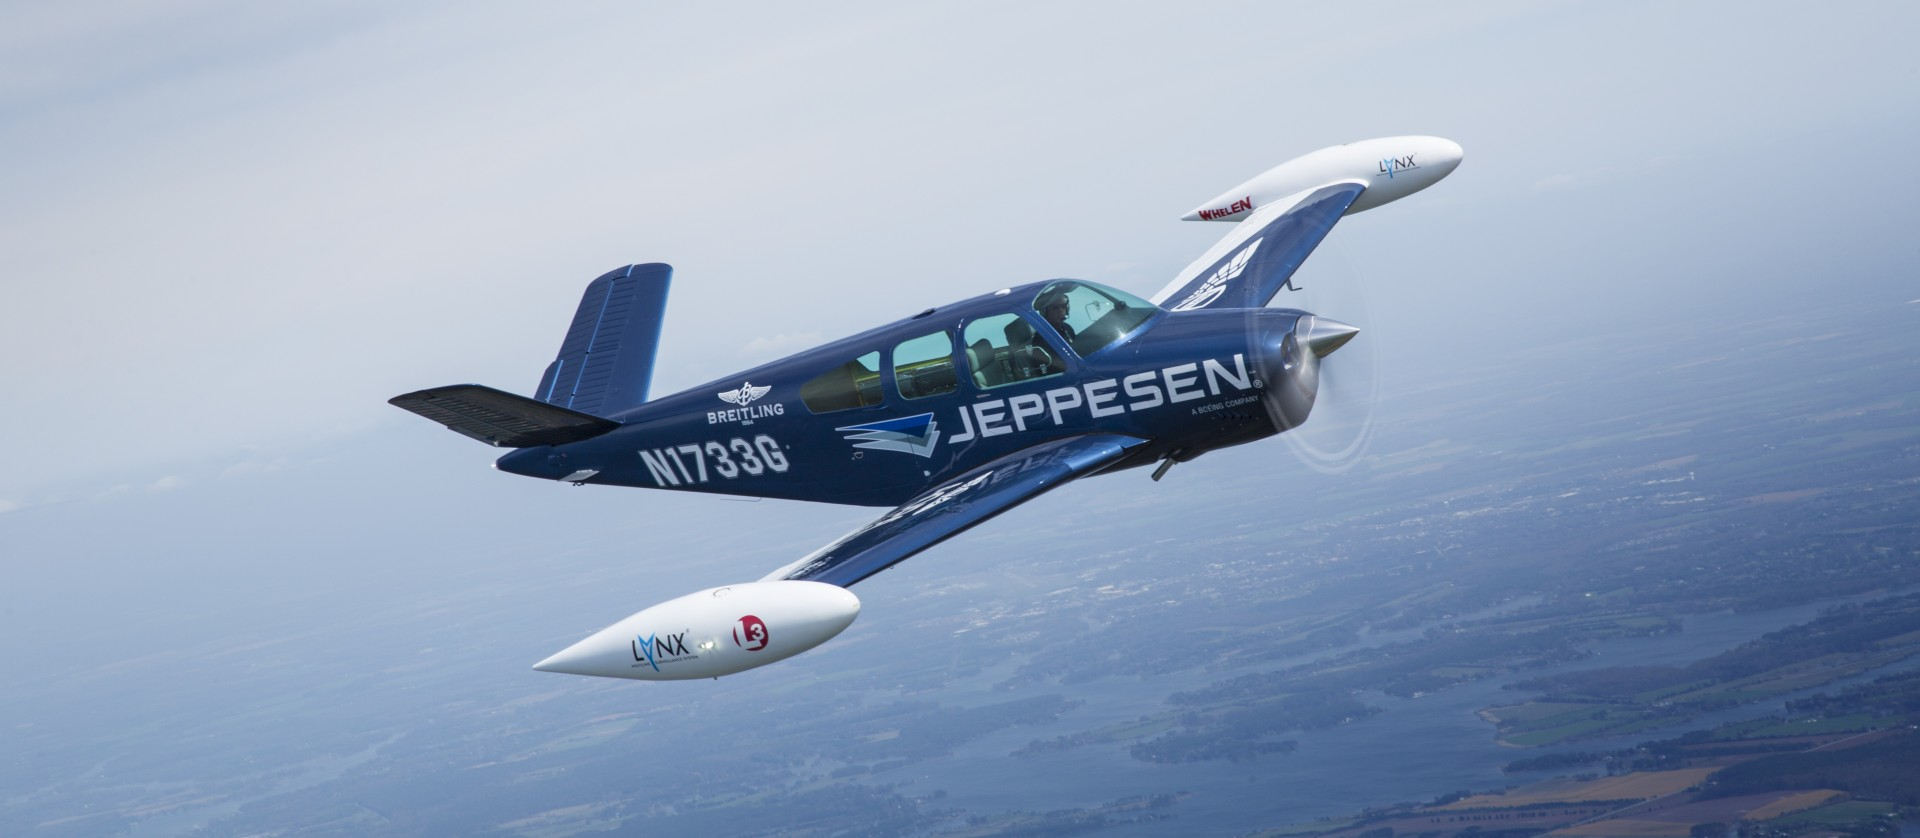 Jeppesen plane flying in the air